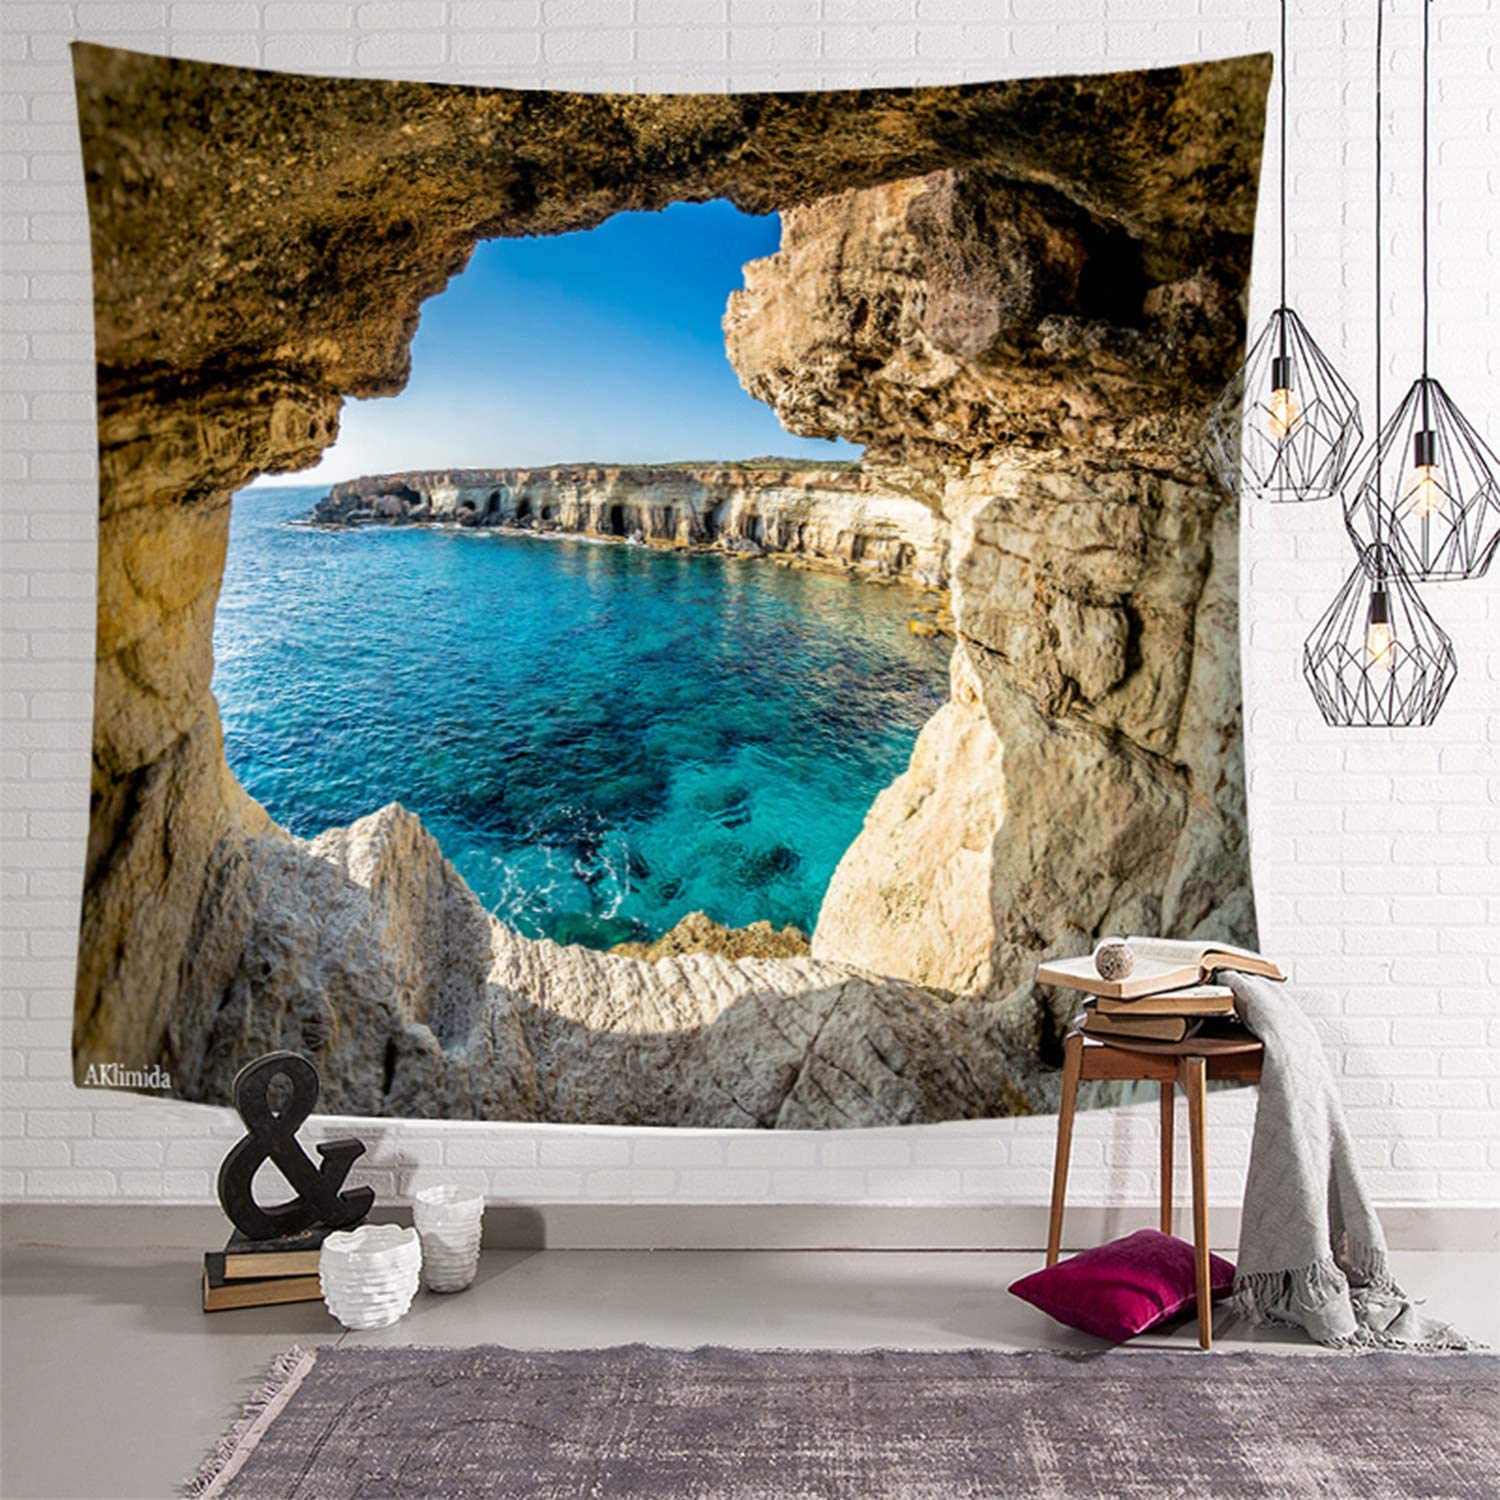 Aklimida Ocean Mountain Tapestry Wall hanging Nature Landscape Tapestry for Bedroom Living Room Dorm Decor Large Tapestrys Wall Art(cave90*60inch)